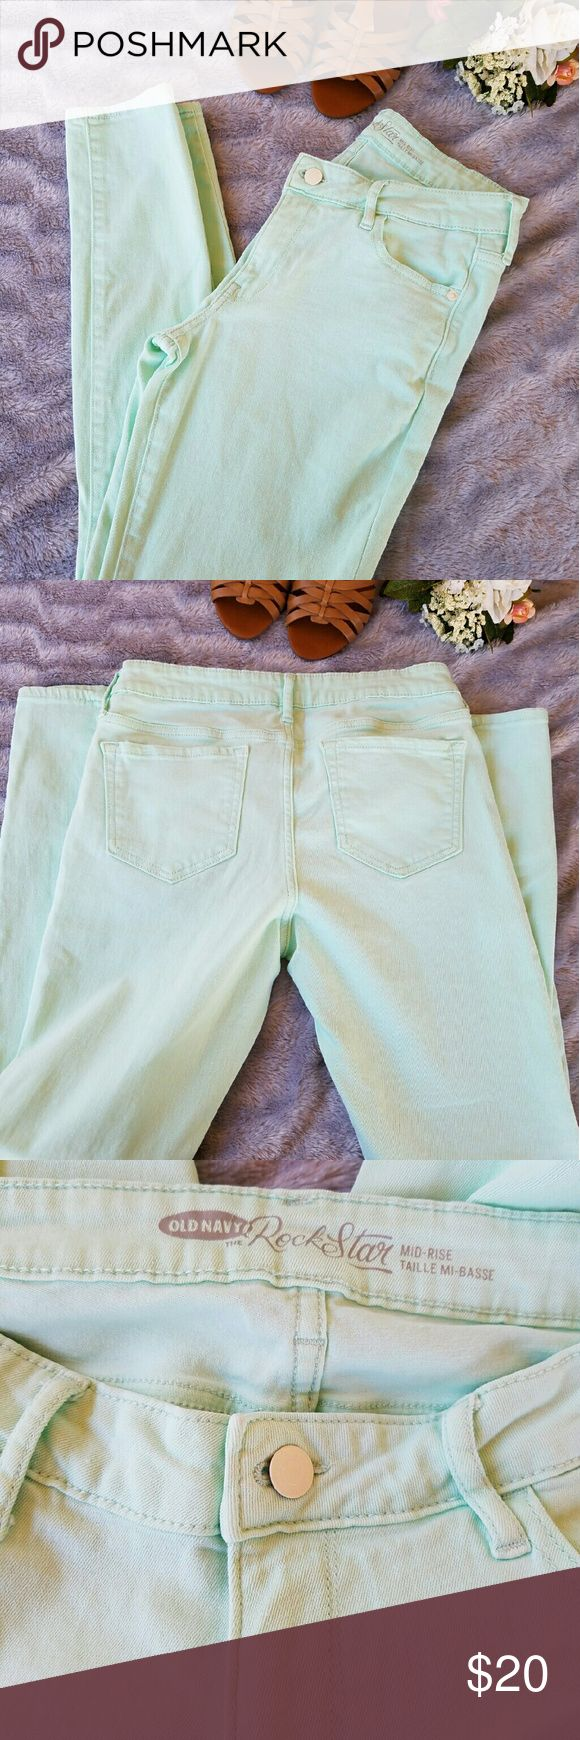 Mint Green Skinny Jeans Beautiful mint green skinny jeans in amazing condition  The Rockstar fit from Old Navy Old Navy Pants Skinny